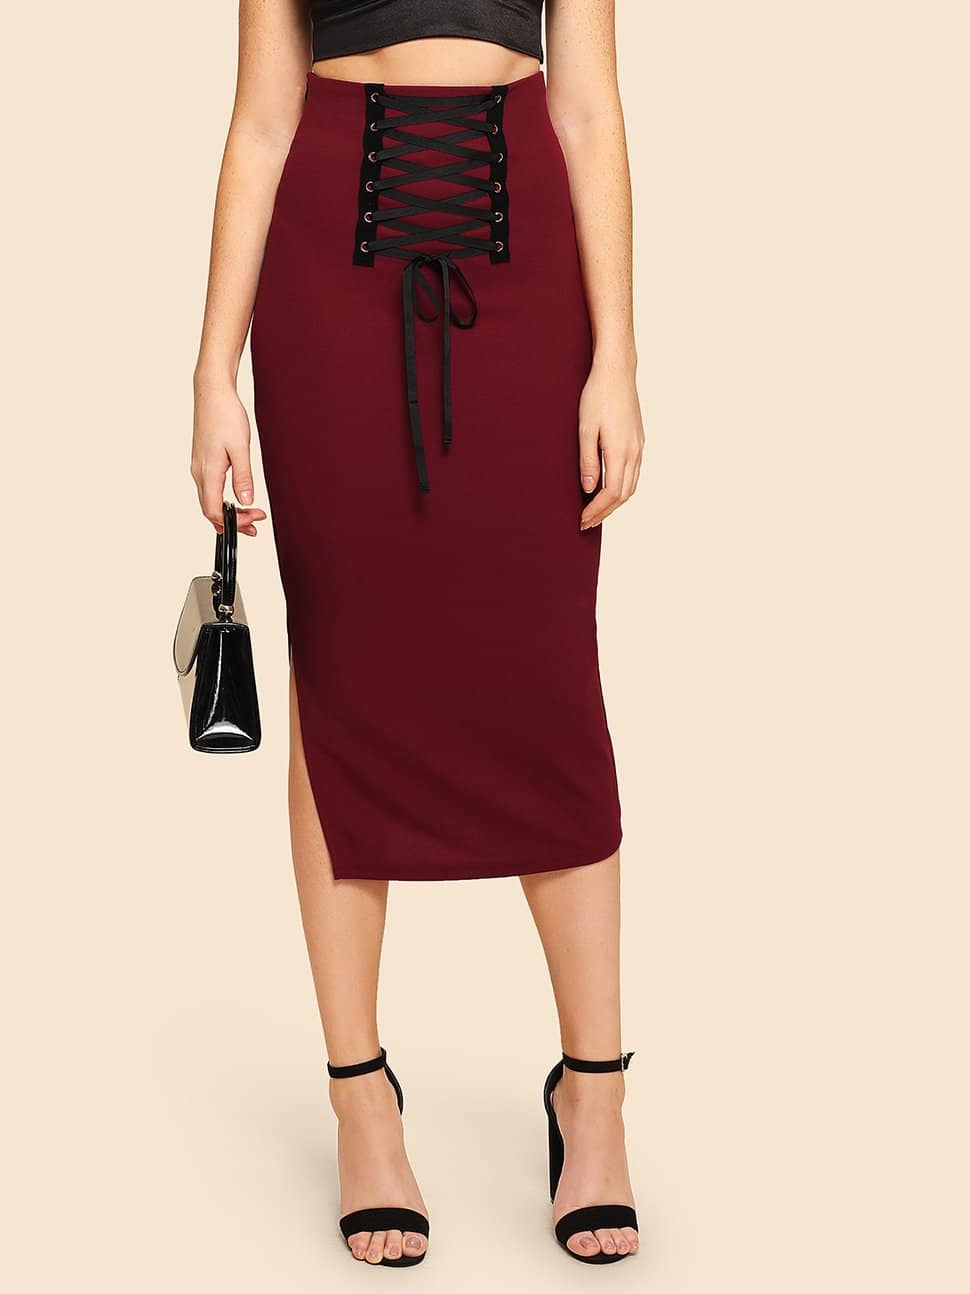 Grommet Lace Up Split Midi Юбка